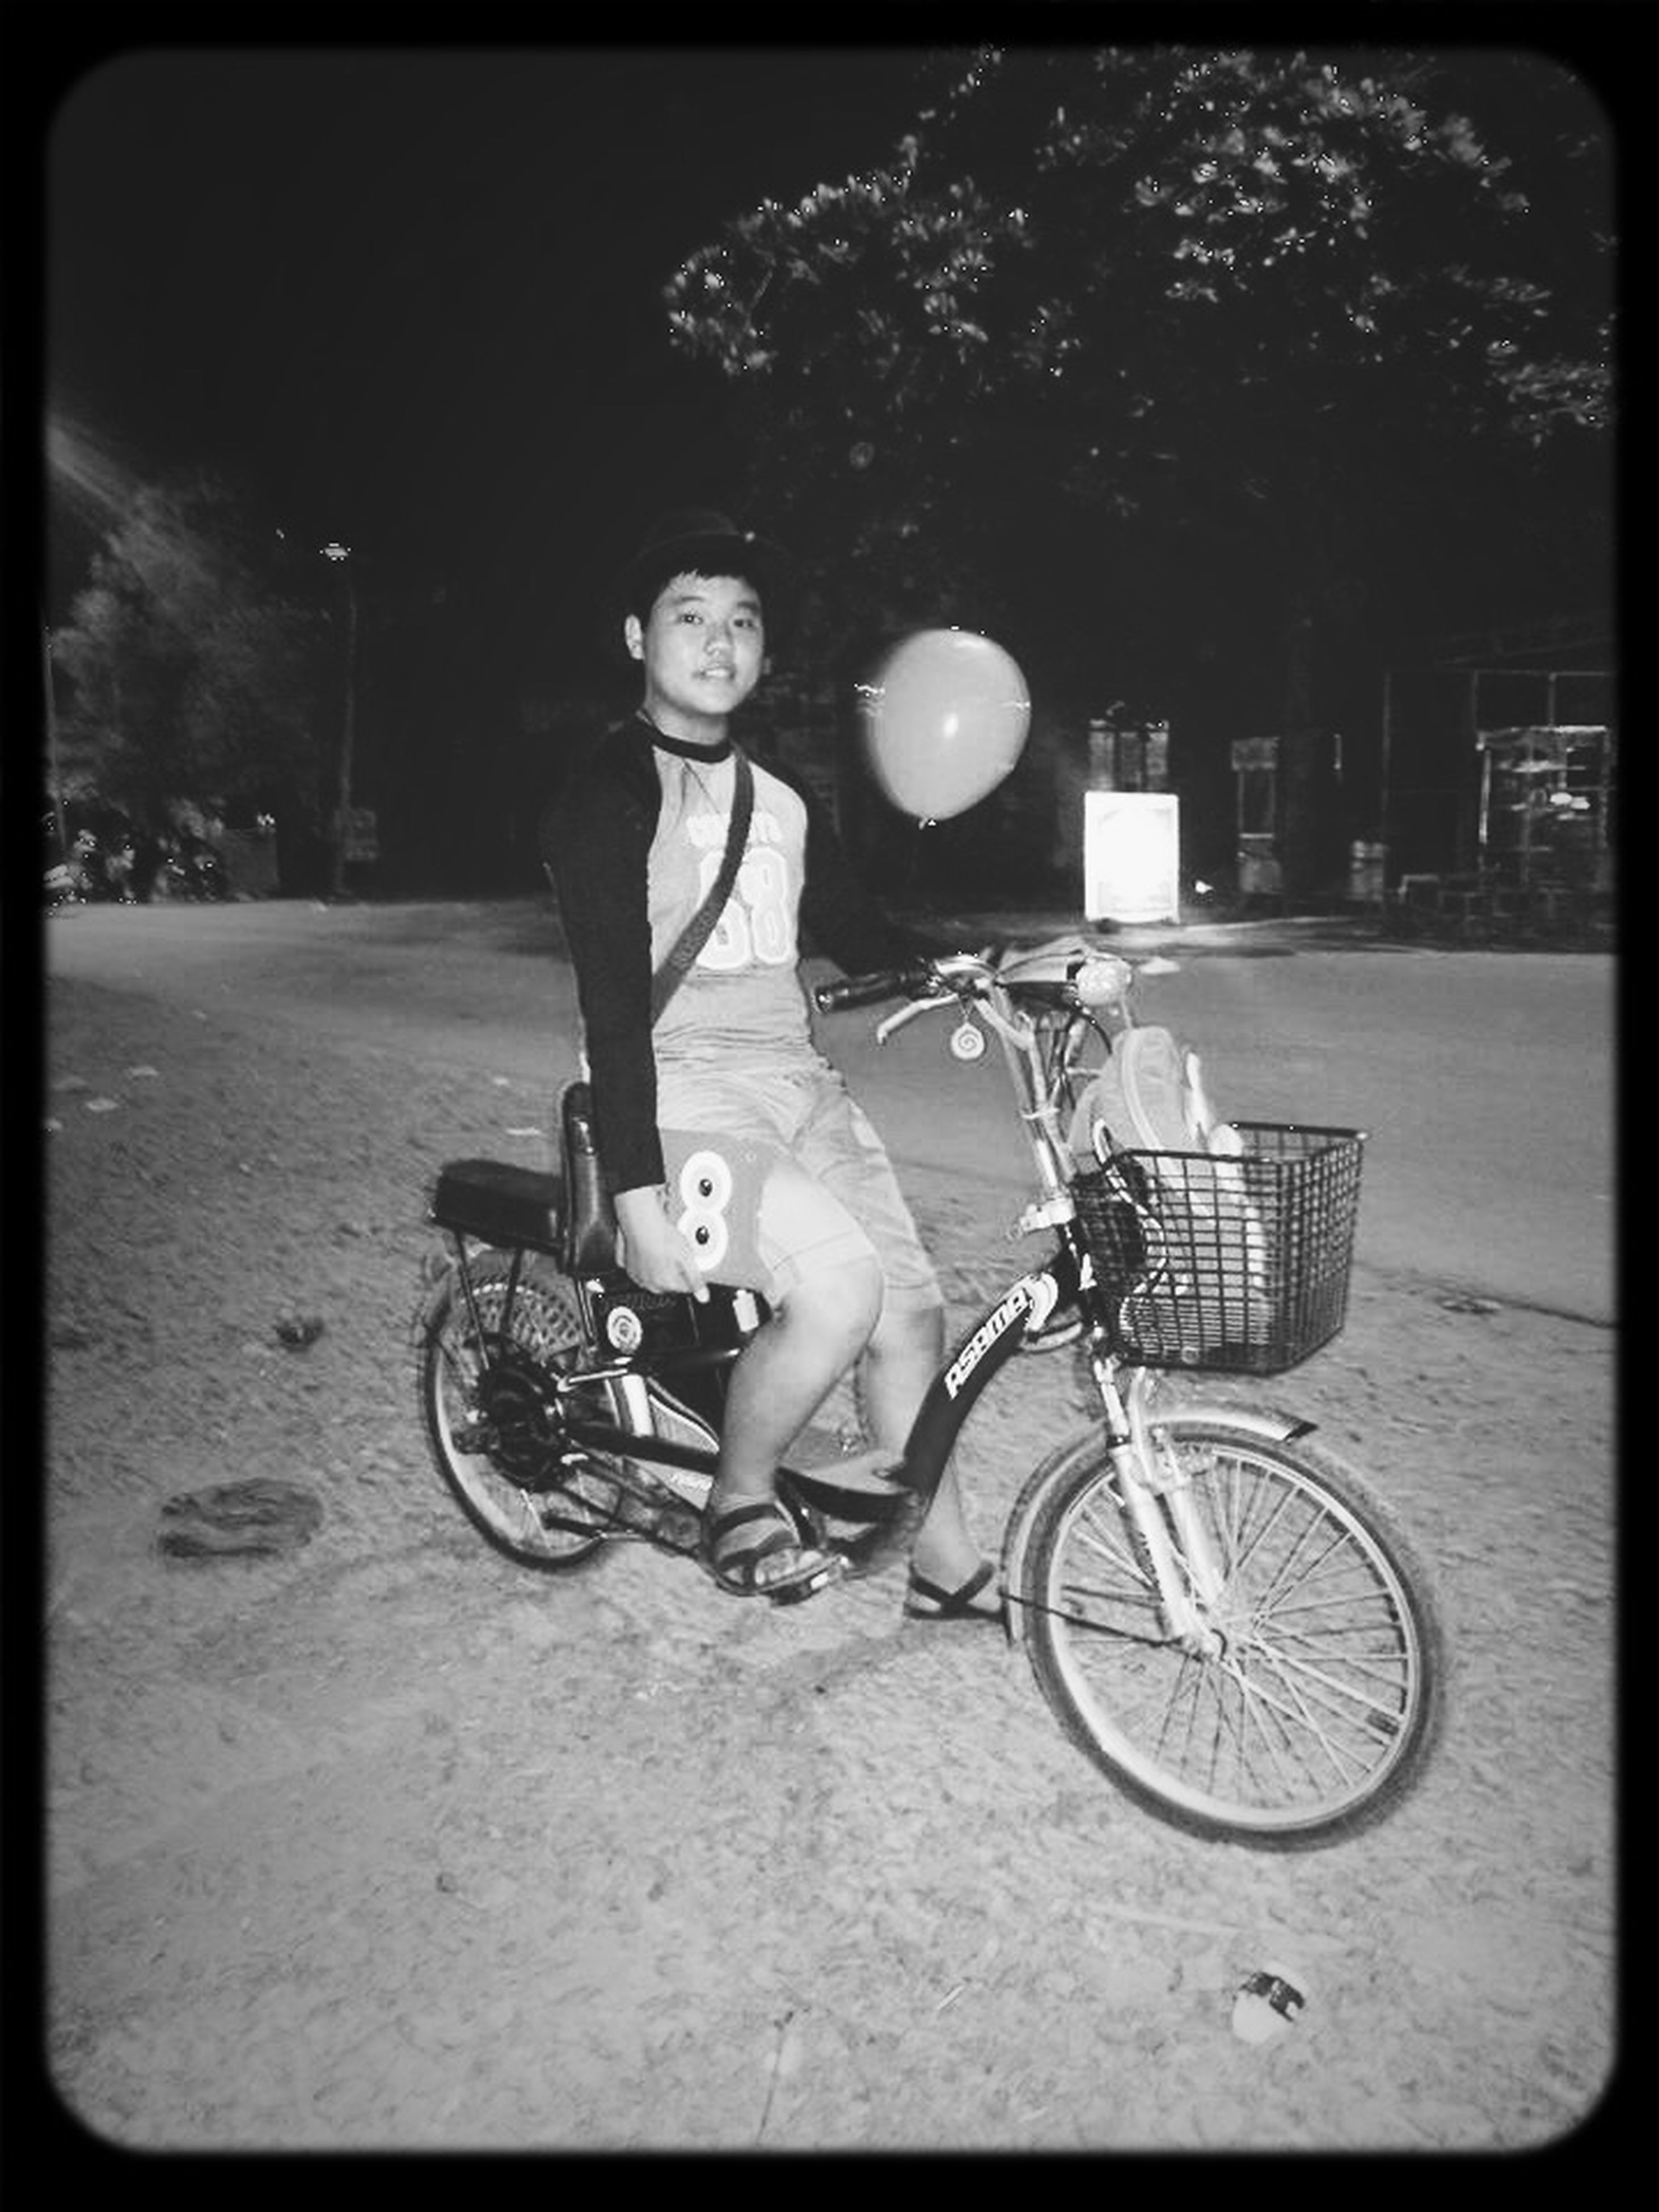 full length, lifestyles, bicycle, leisure activity, transfer print, person, land vehicle, childhood, casual clothing, auto post production filter, transportation, boys, elementary age, mode of transport, street, looking at camera, portrait, innocence